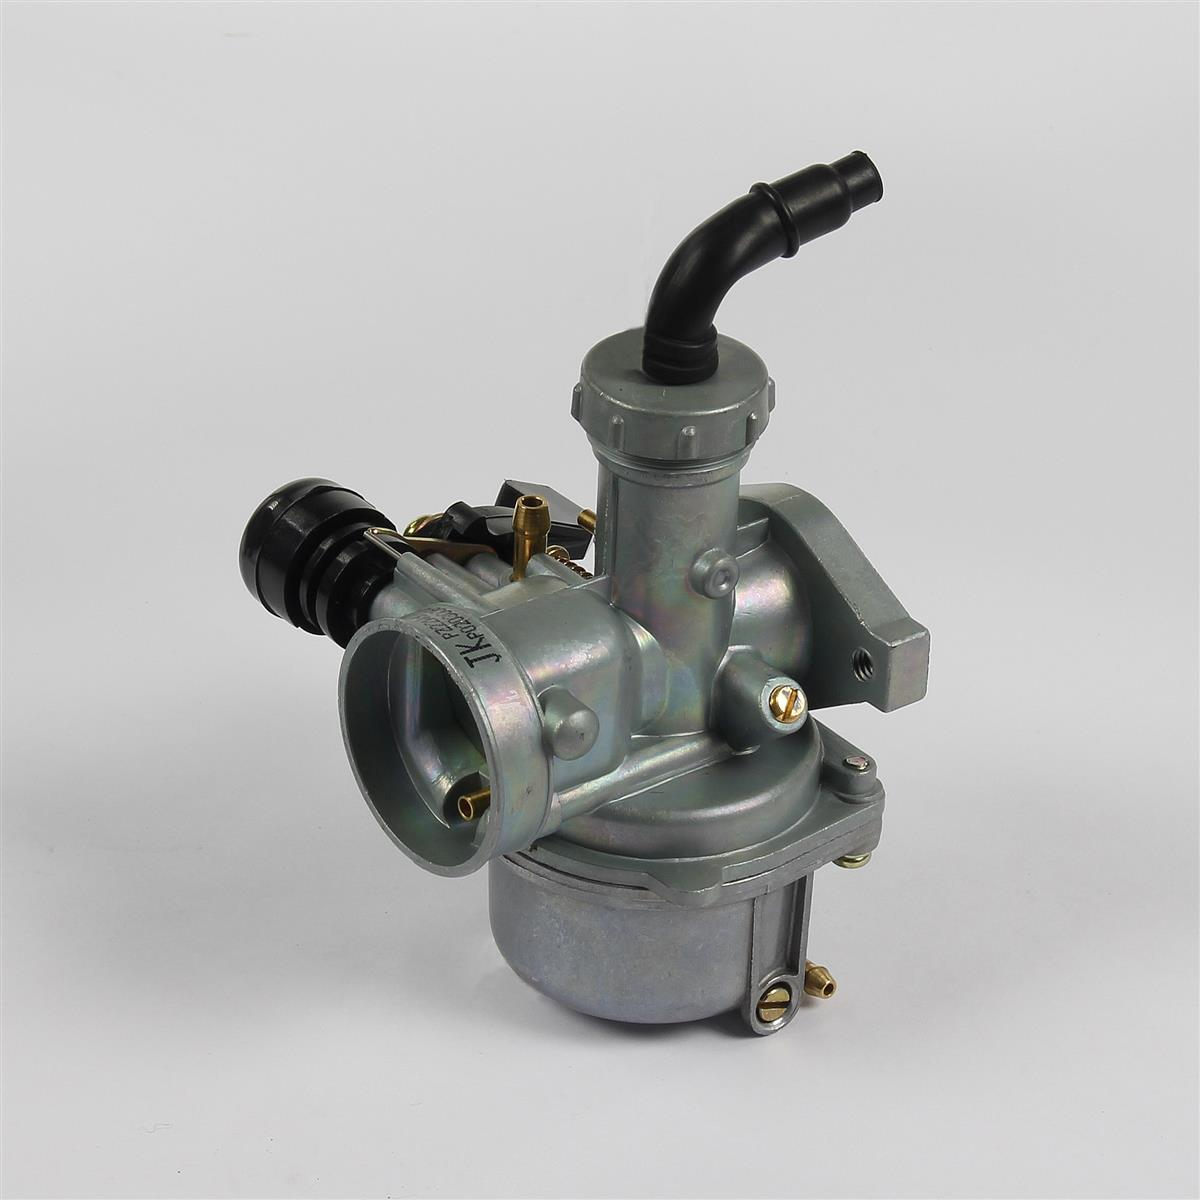 Pit Bike Carby id, what carby is this ? Carburetor, Carb, Mikuni